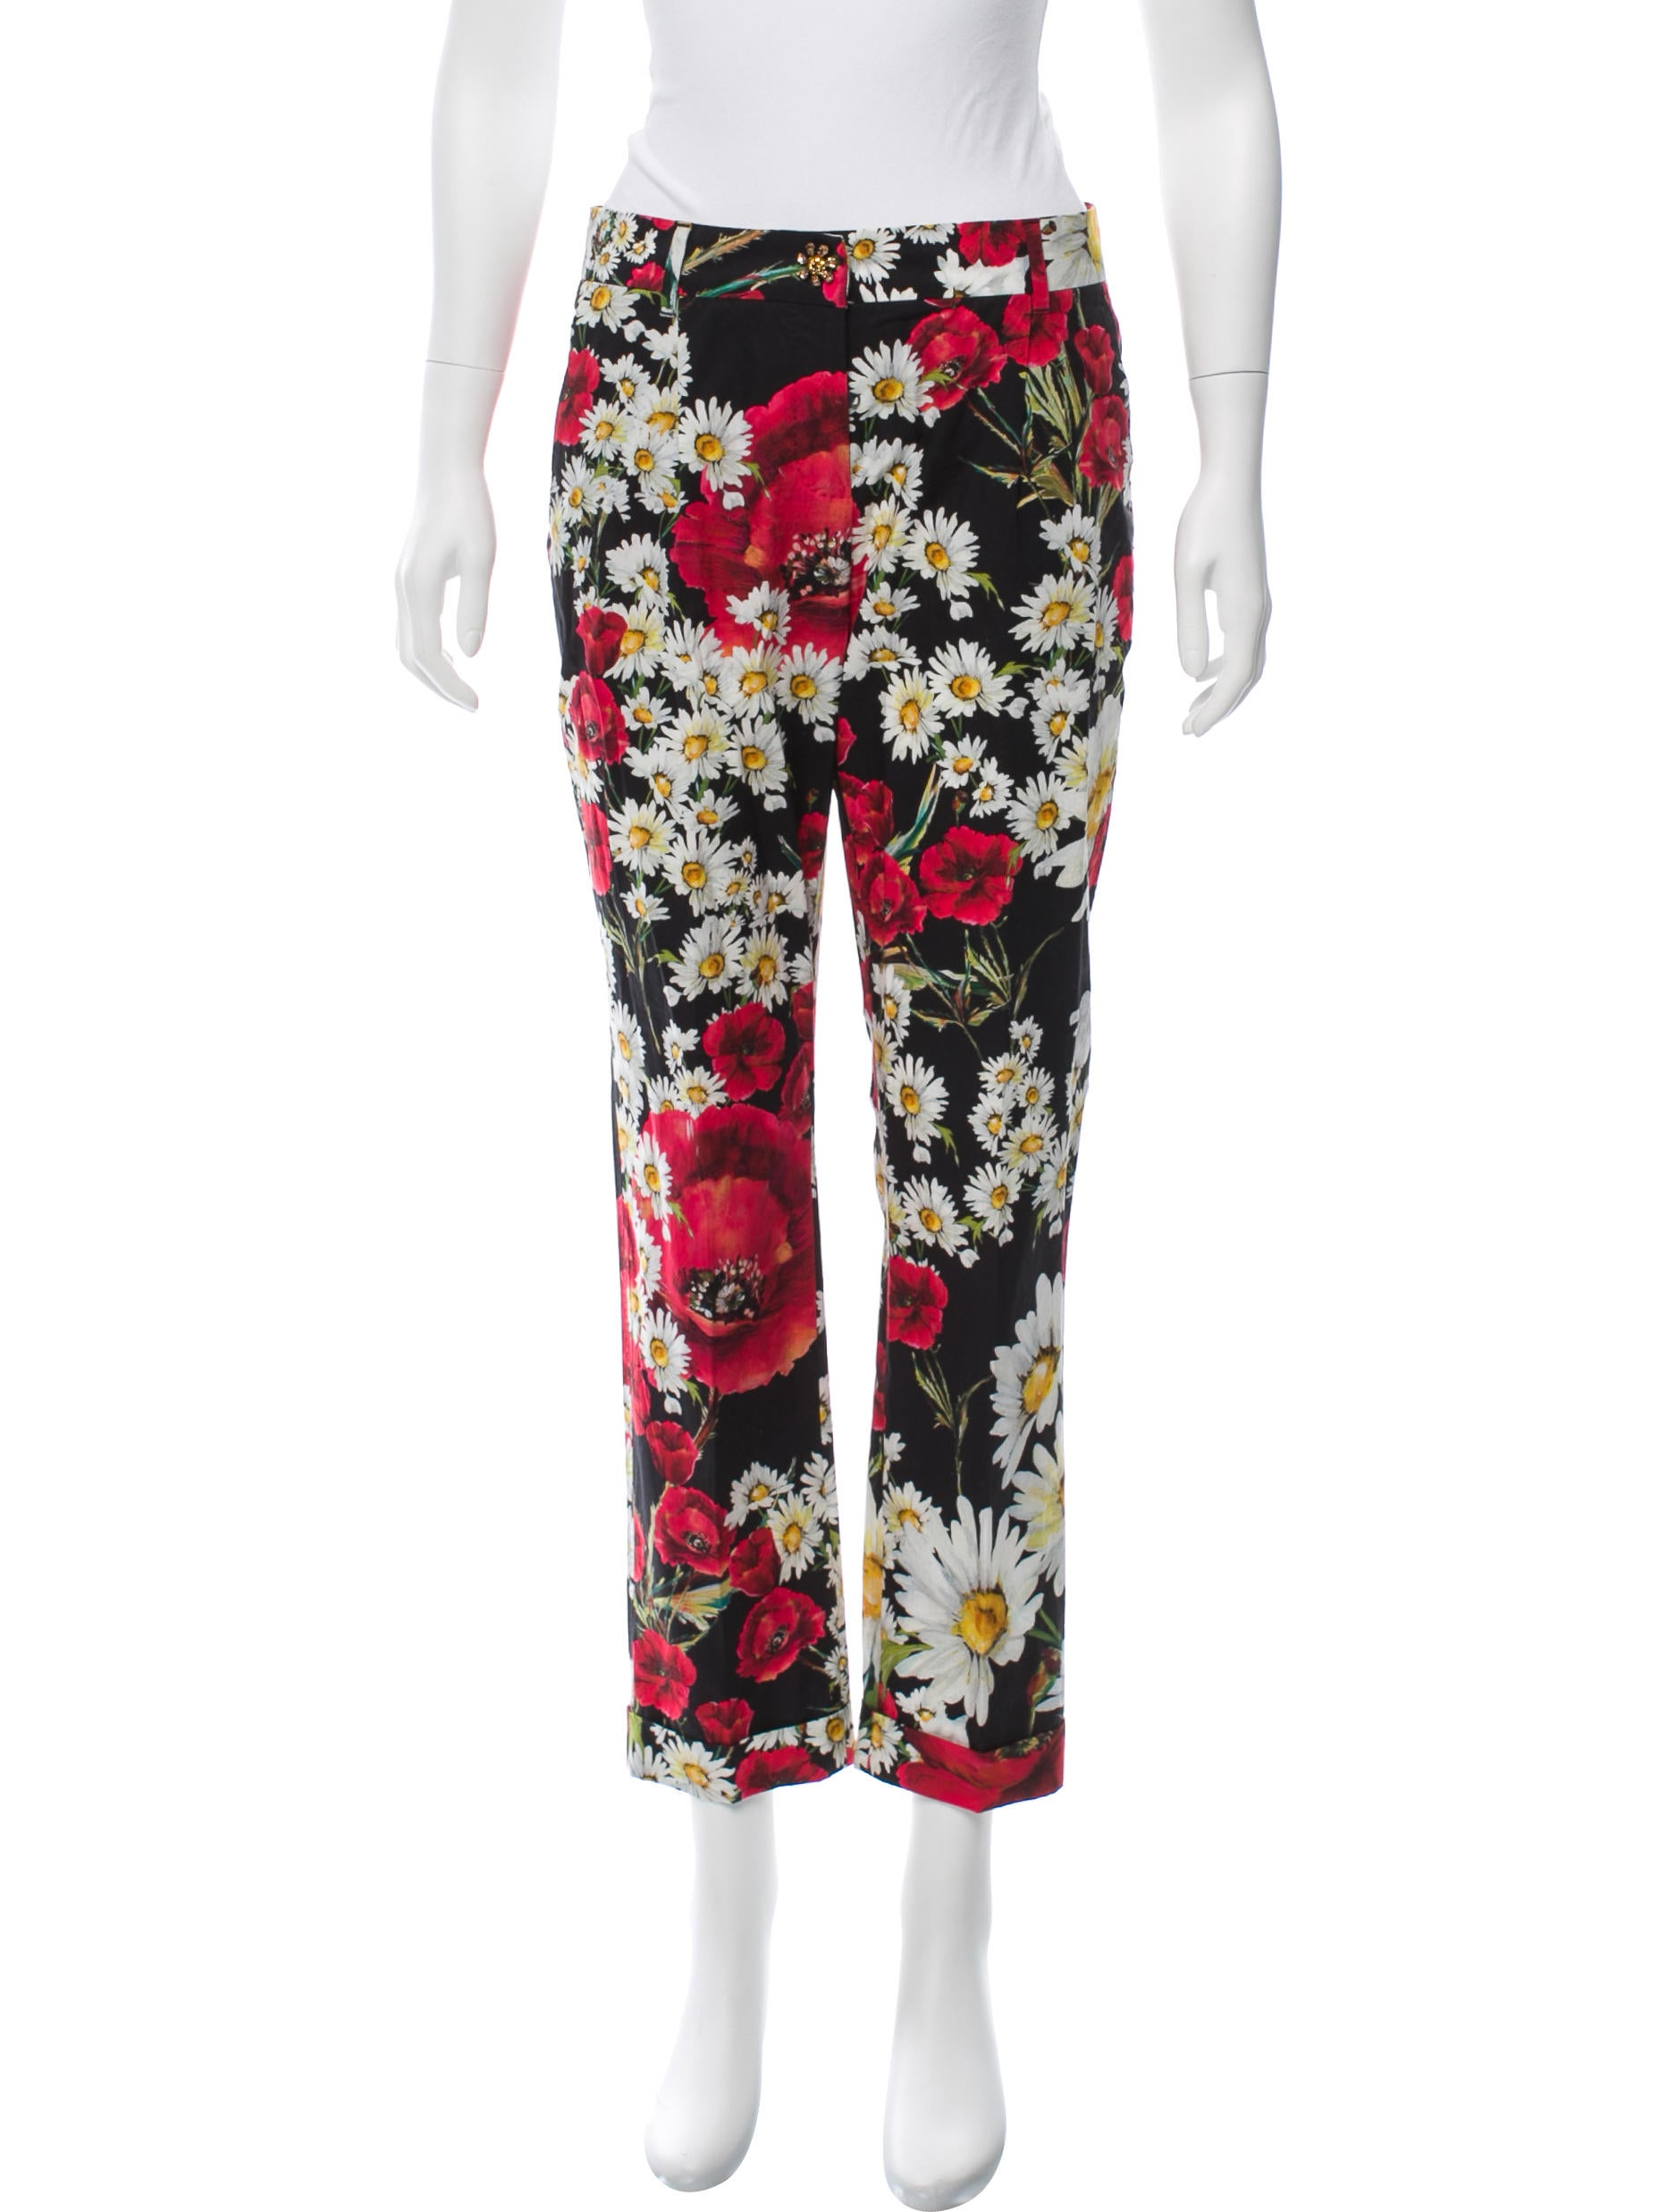 Dolce & Gabbana Printed Mid-Rise Pants Buy Cheap Best Wholesale Quality Clearance Countdown Package Geniue Stockist For Sale Cheap Sale Find Great 4wVBOiv